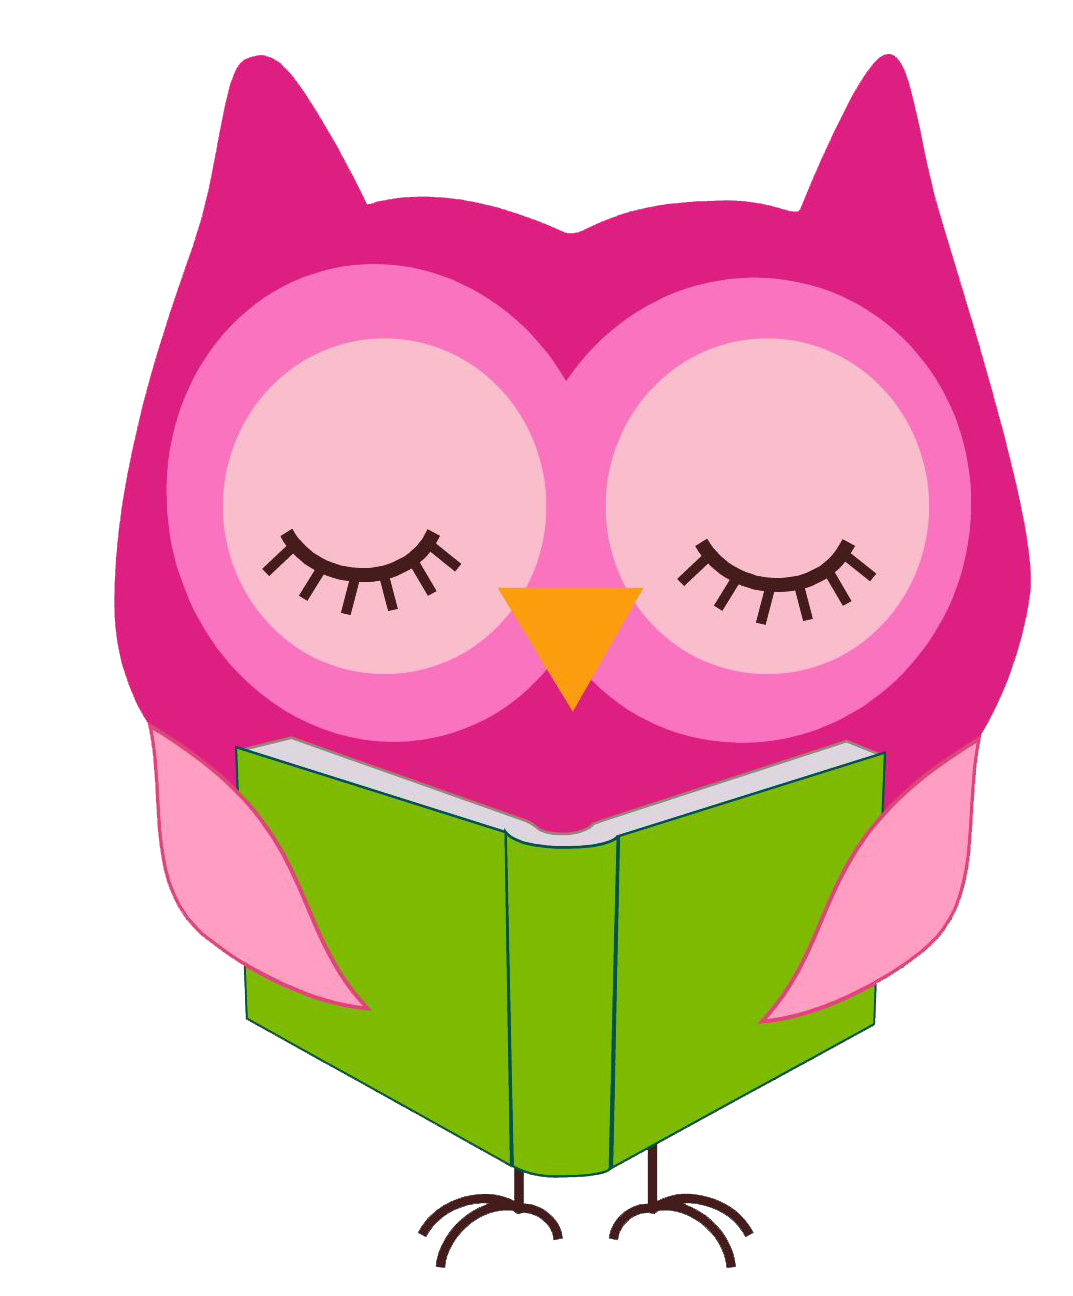 Clip art cliparts co. Reading clipart owl banner royalty free